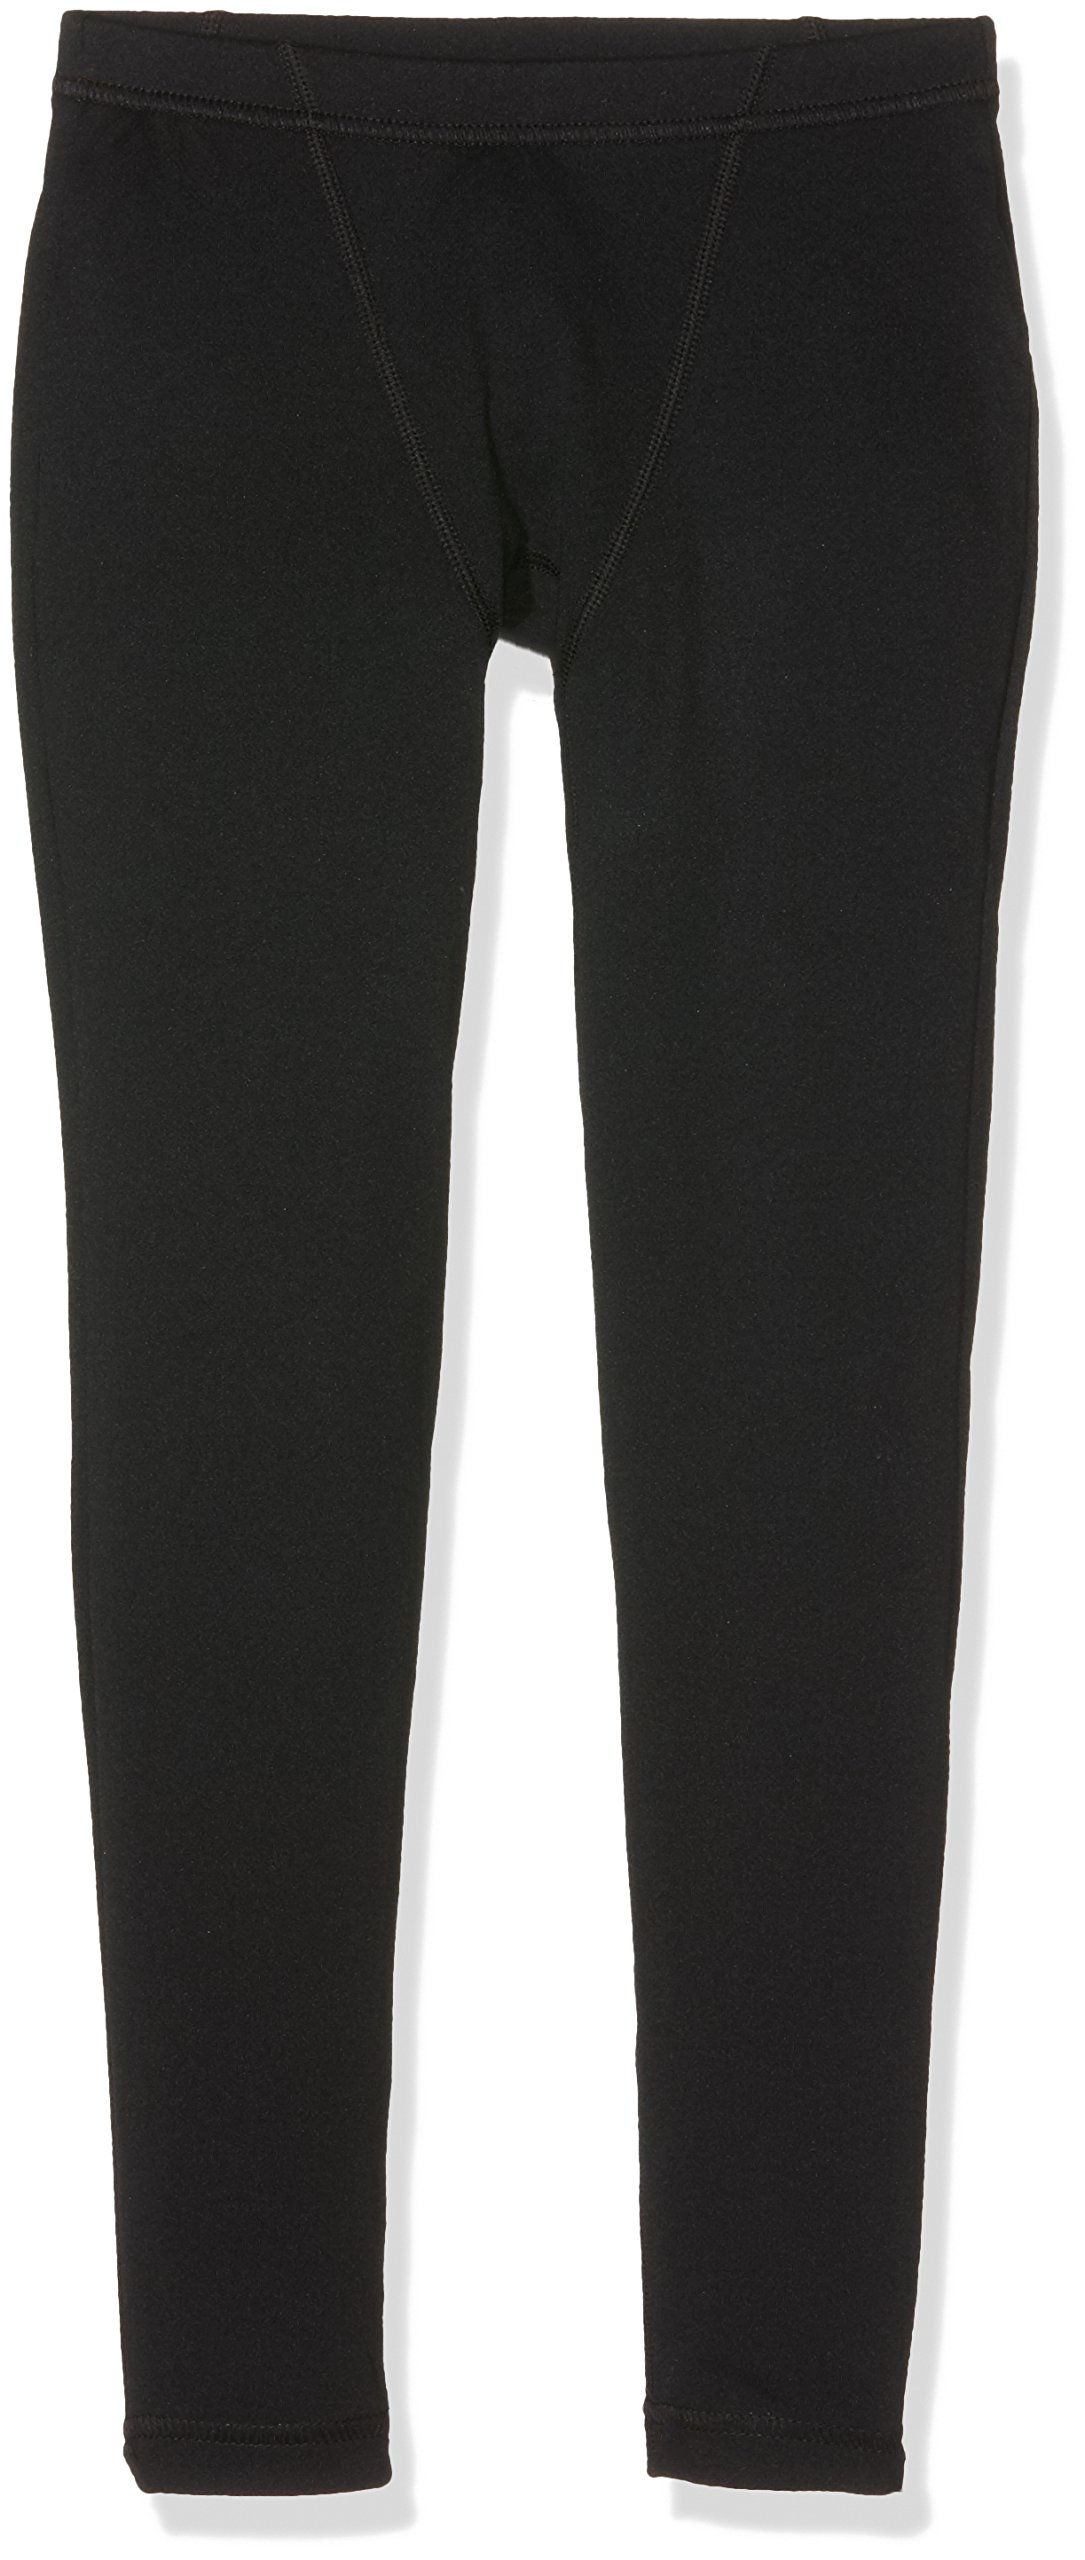 Columbia Kids Unisex Baselayer Midweight Tight (Little Kids/Big Kids) Black Pants